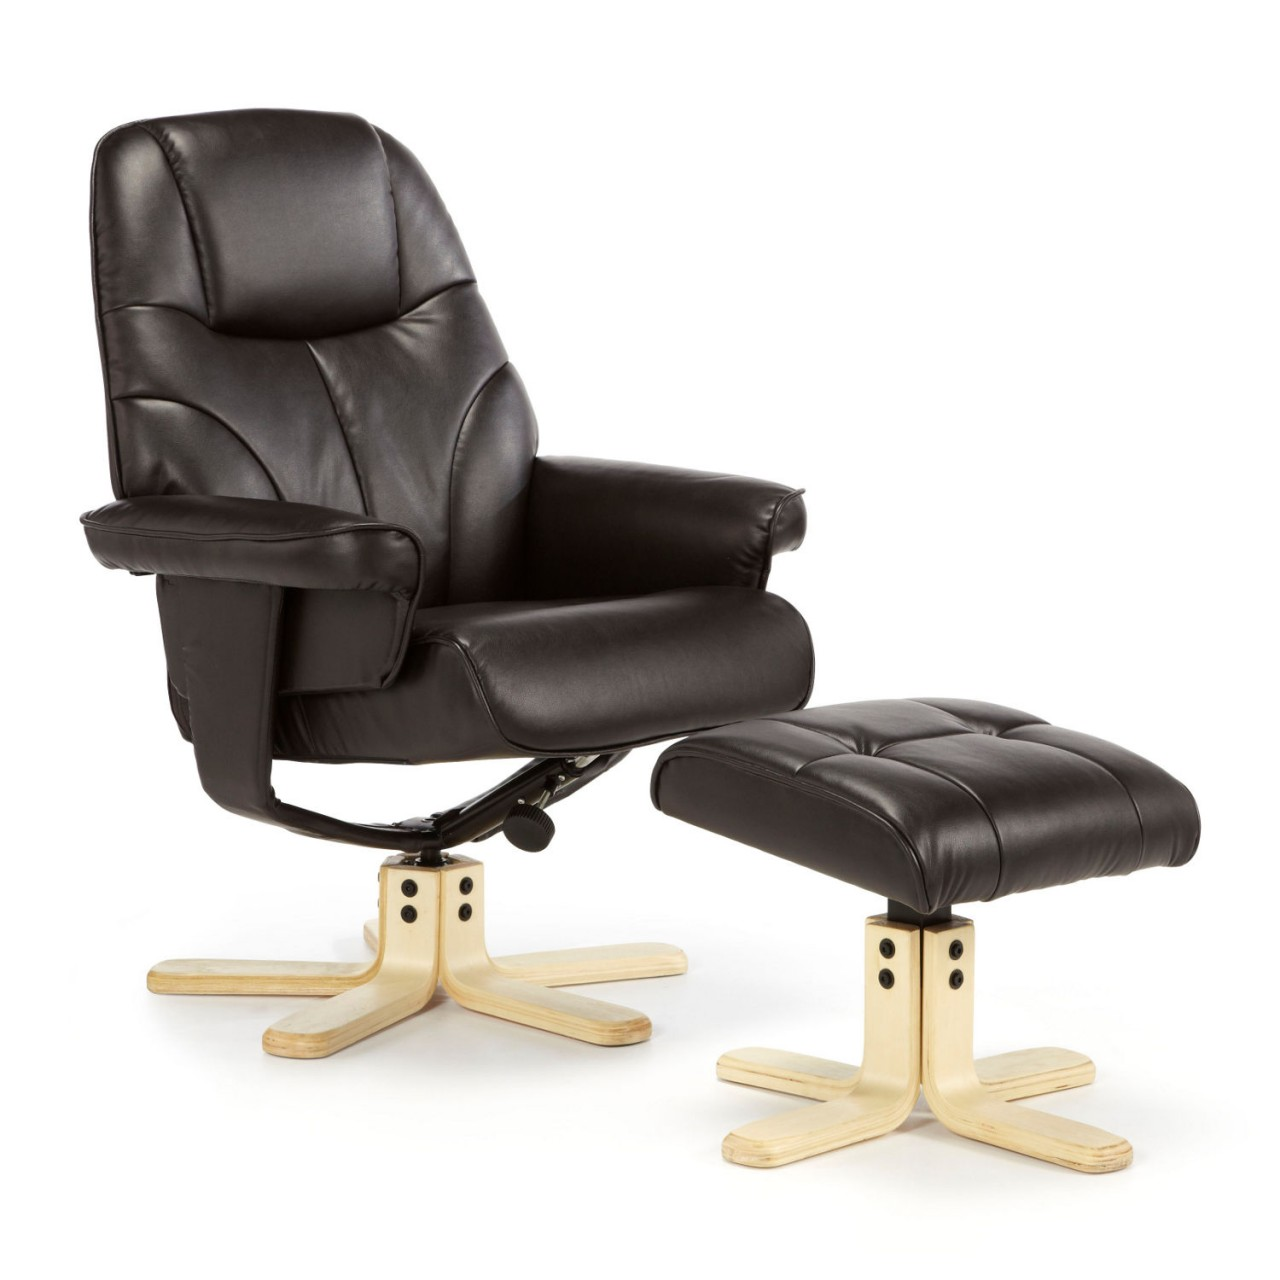 Leather Swivel Chairs Leather Swivel Office Chairs